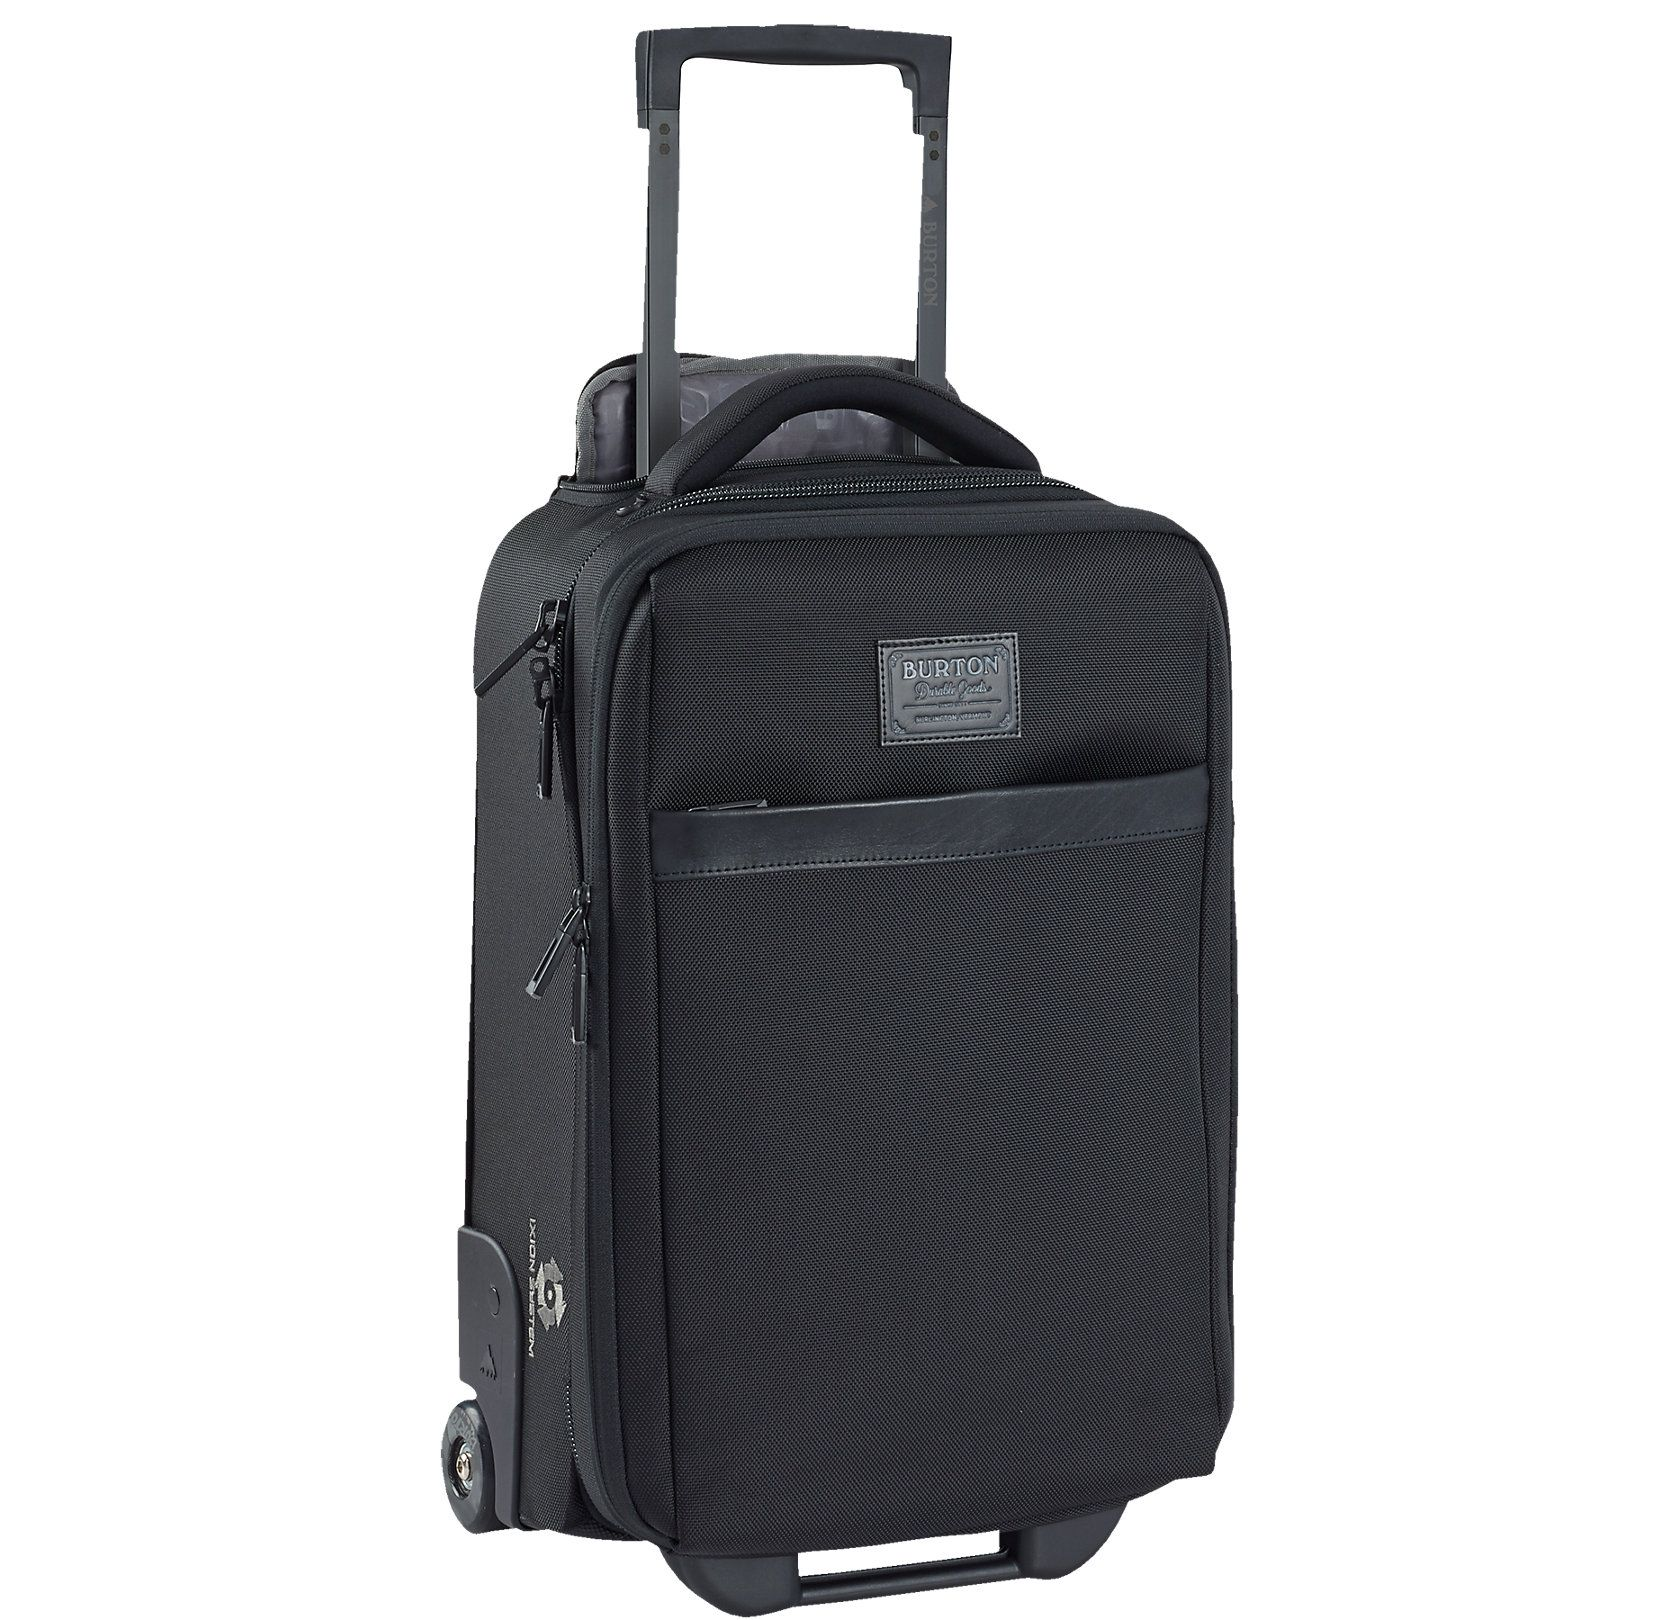 Burton Wheelie Flyer Travel Bag | Productivity, The o'jays and Bags